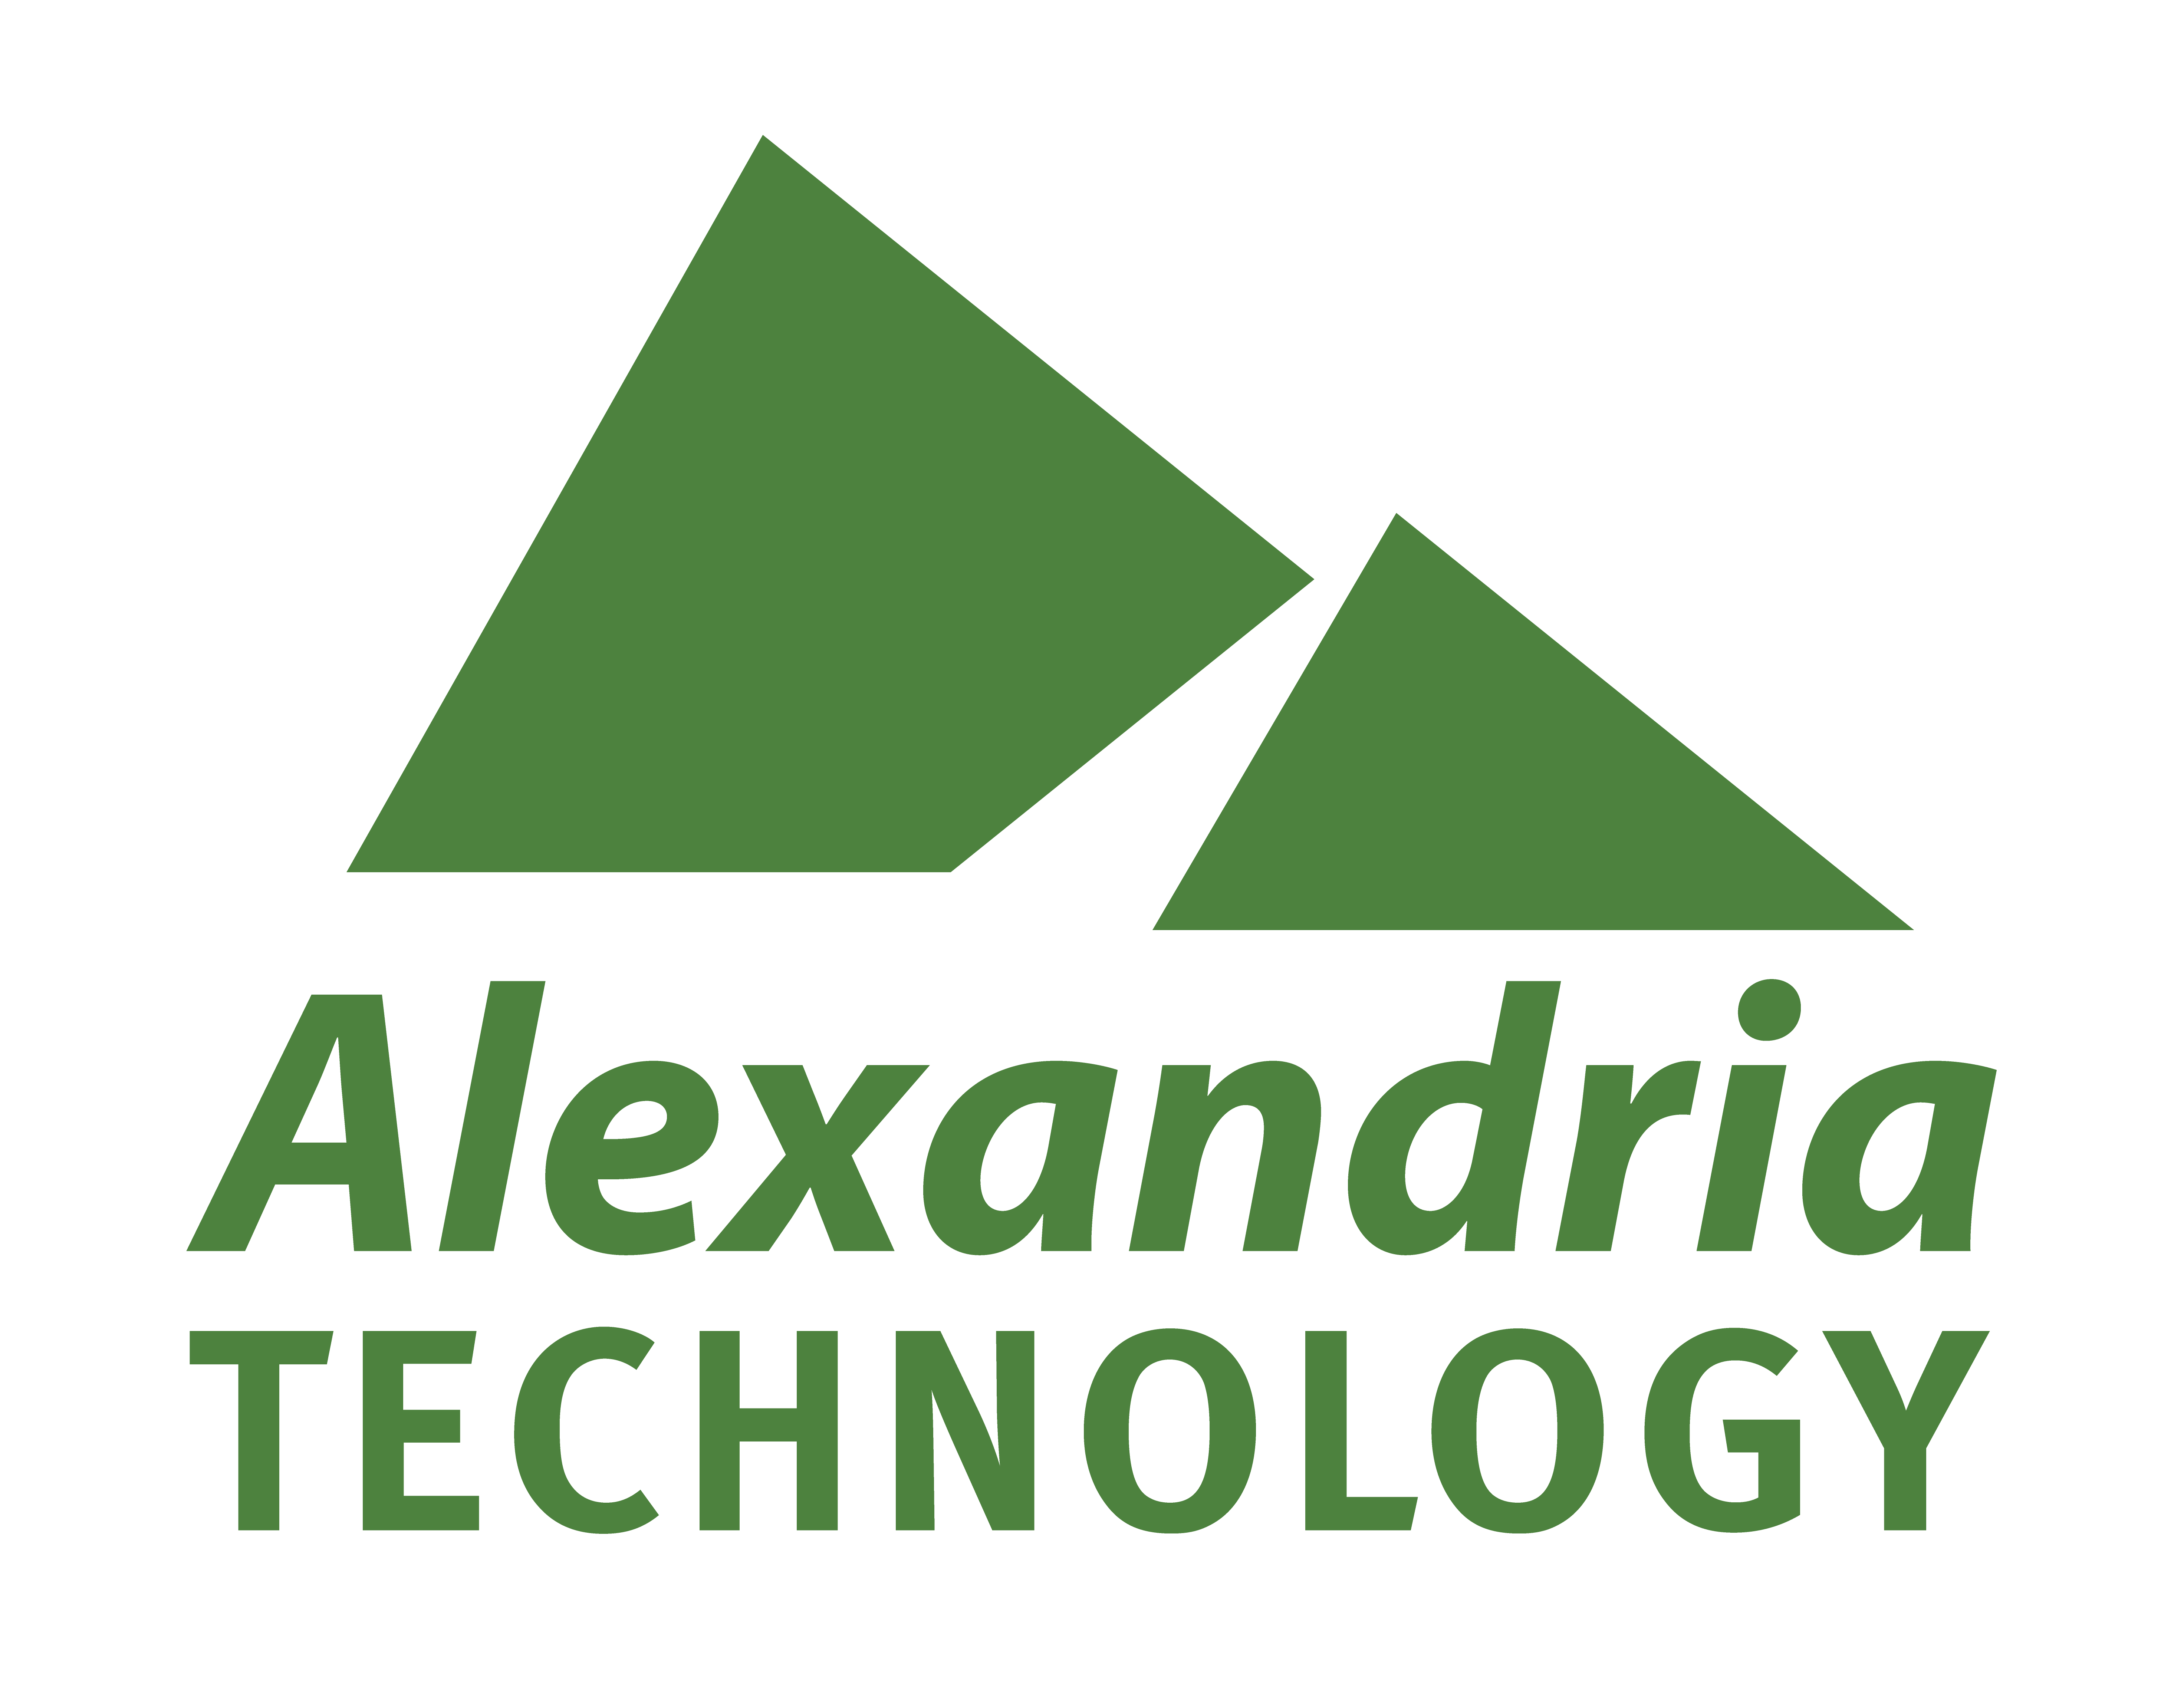 Alexandria Research